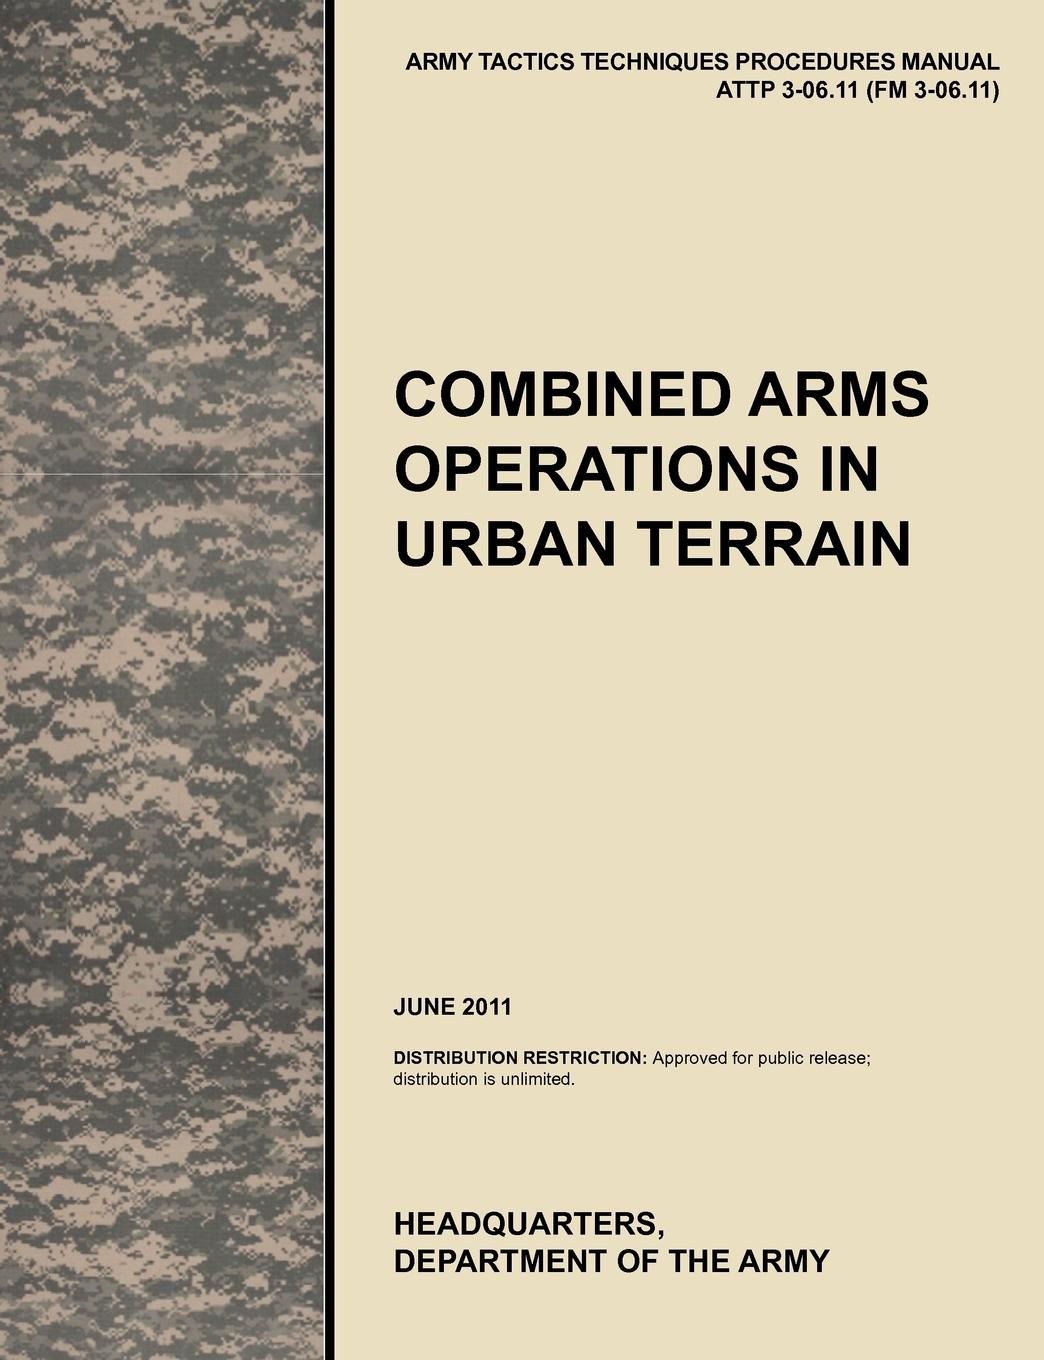 U. S. Army Training and Doctrine Command, Army Maneuver Center of Excellence, U. S. Department of the Combined Arms Operations in Urban Terrain. The Official U.S. Army Tactics, Techniques, and Procedures Manual Attp 3-06.11 (FM 3-06.11), June 2011 department of the army u s army corps of engineers water resource policies and authorities incorporating sea level change considerations in civil works programs